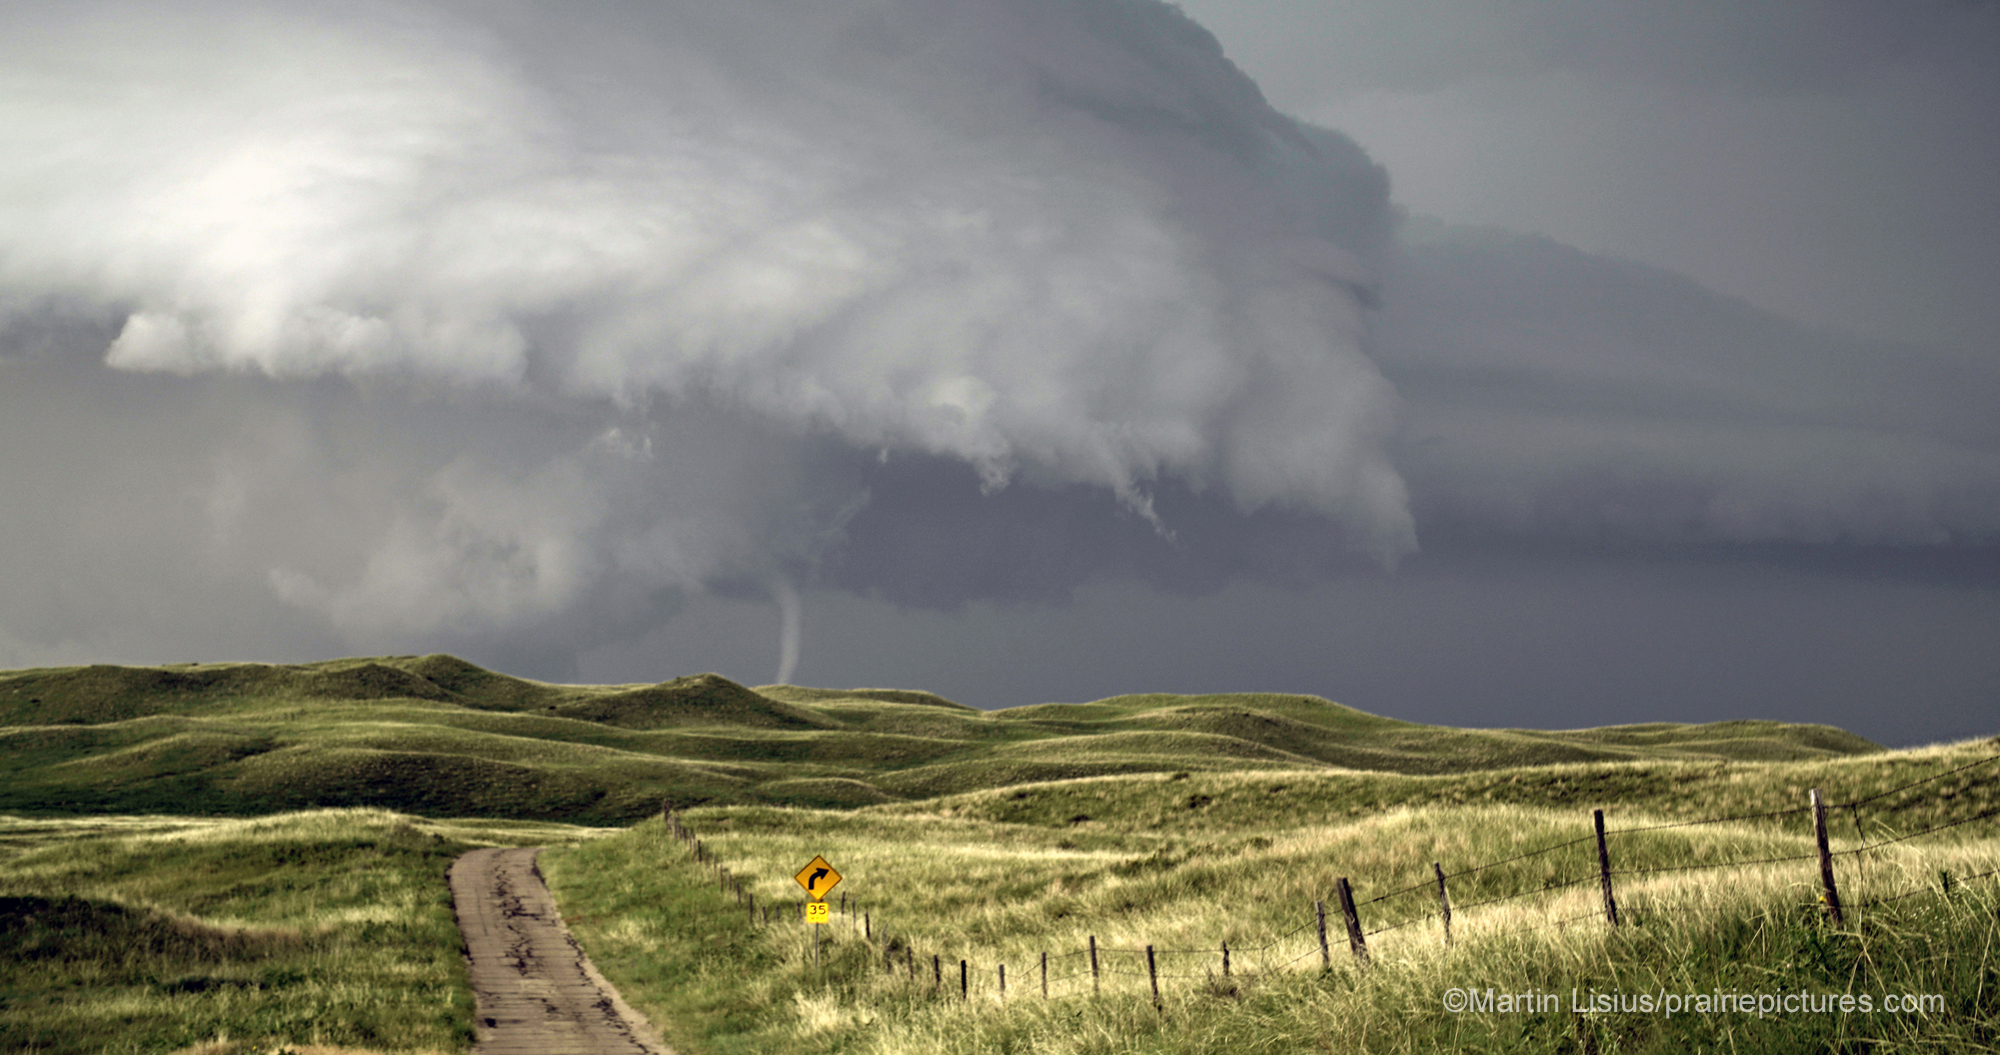 Best_Gear_for_Storm_Photography_by_Martin_Lisius_tornado